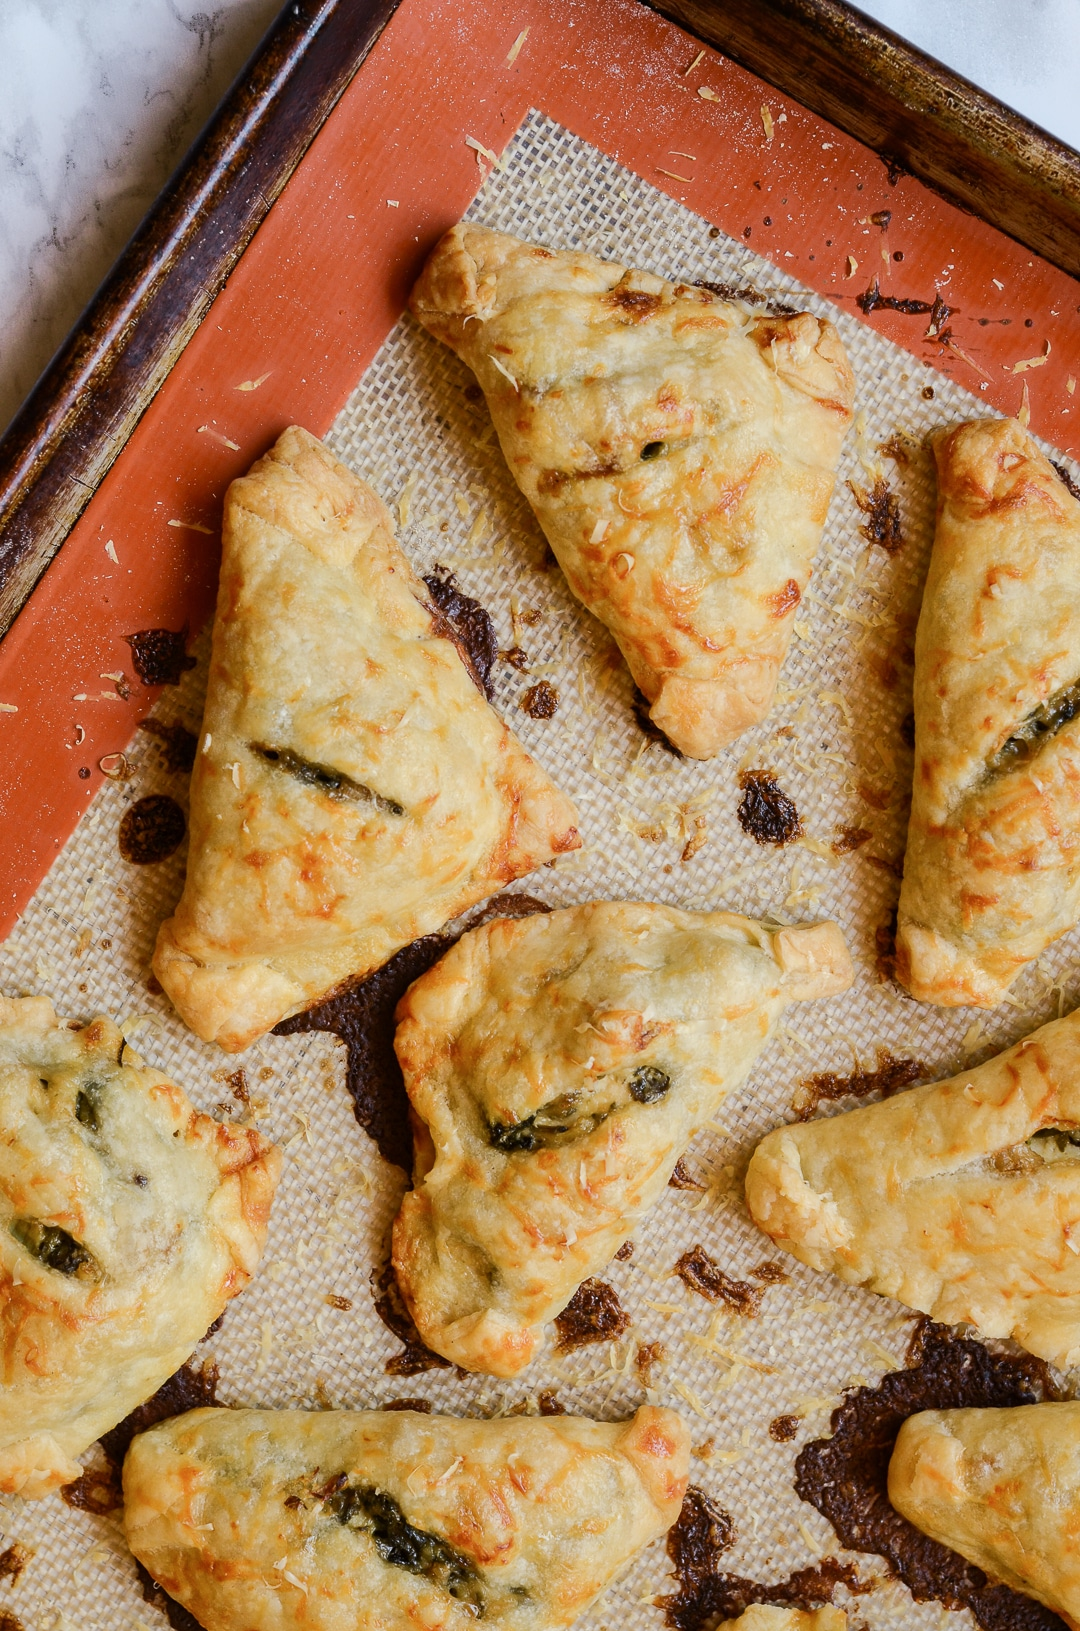 Be the hit of the party (or cookout) with these deliciously fluffy Mini Chicken Bacon Spinach Artichoke Hand Pies. They're the perfect finger food appetizer for any occasion!